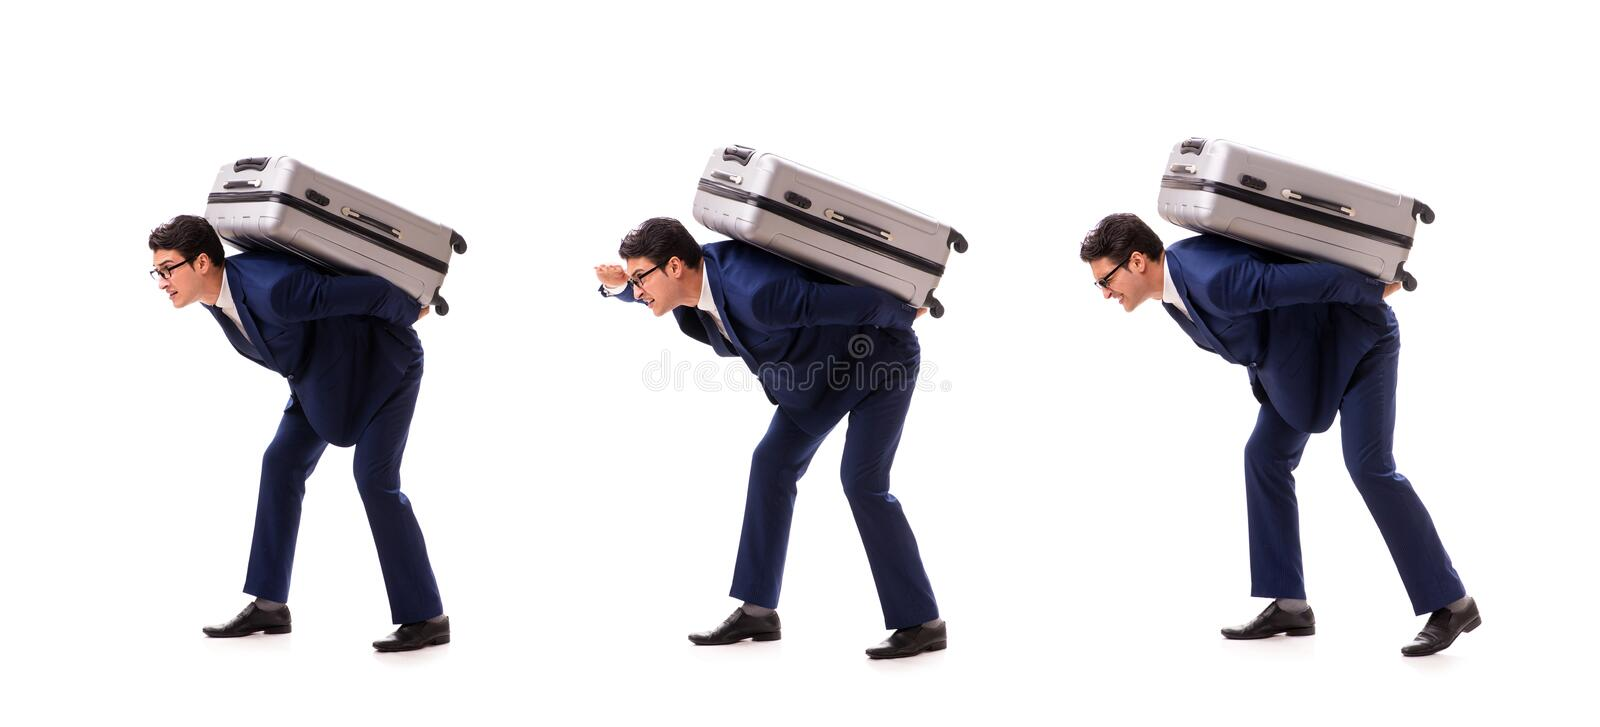 The businessman facing excess charges due to heavy suitcase. Businessman facing excess charges due to heavy suitcase royalty free stock image